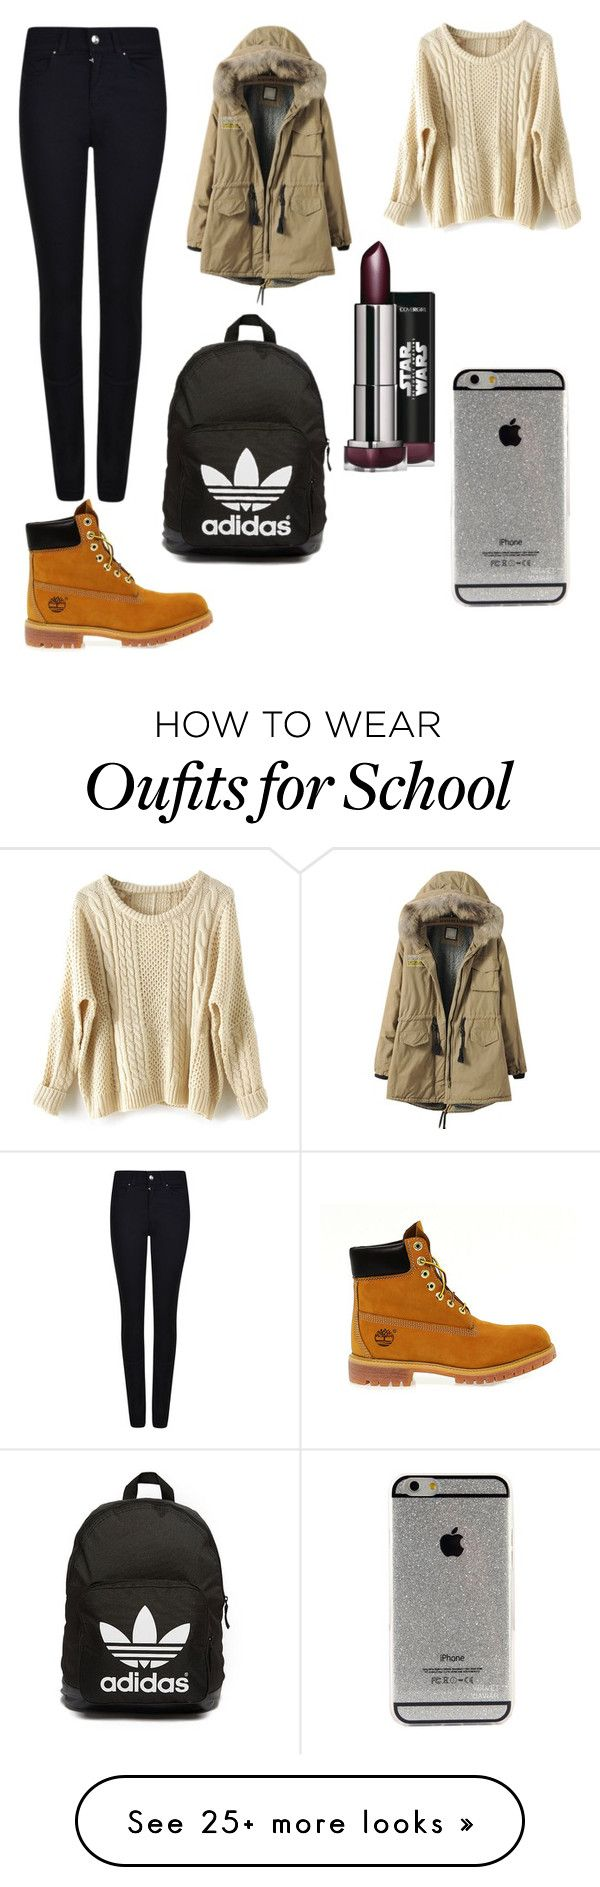 """school OOTD"" by daniela-karasova on Polyvore featuring Giorgio Armani, Timberland and adidas Originals"